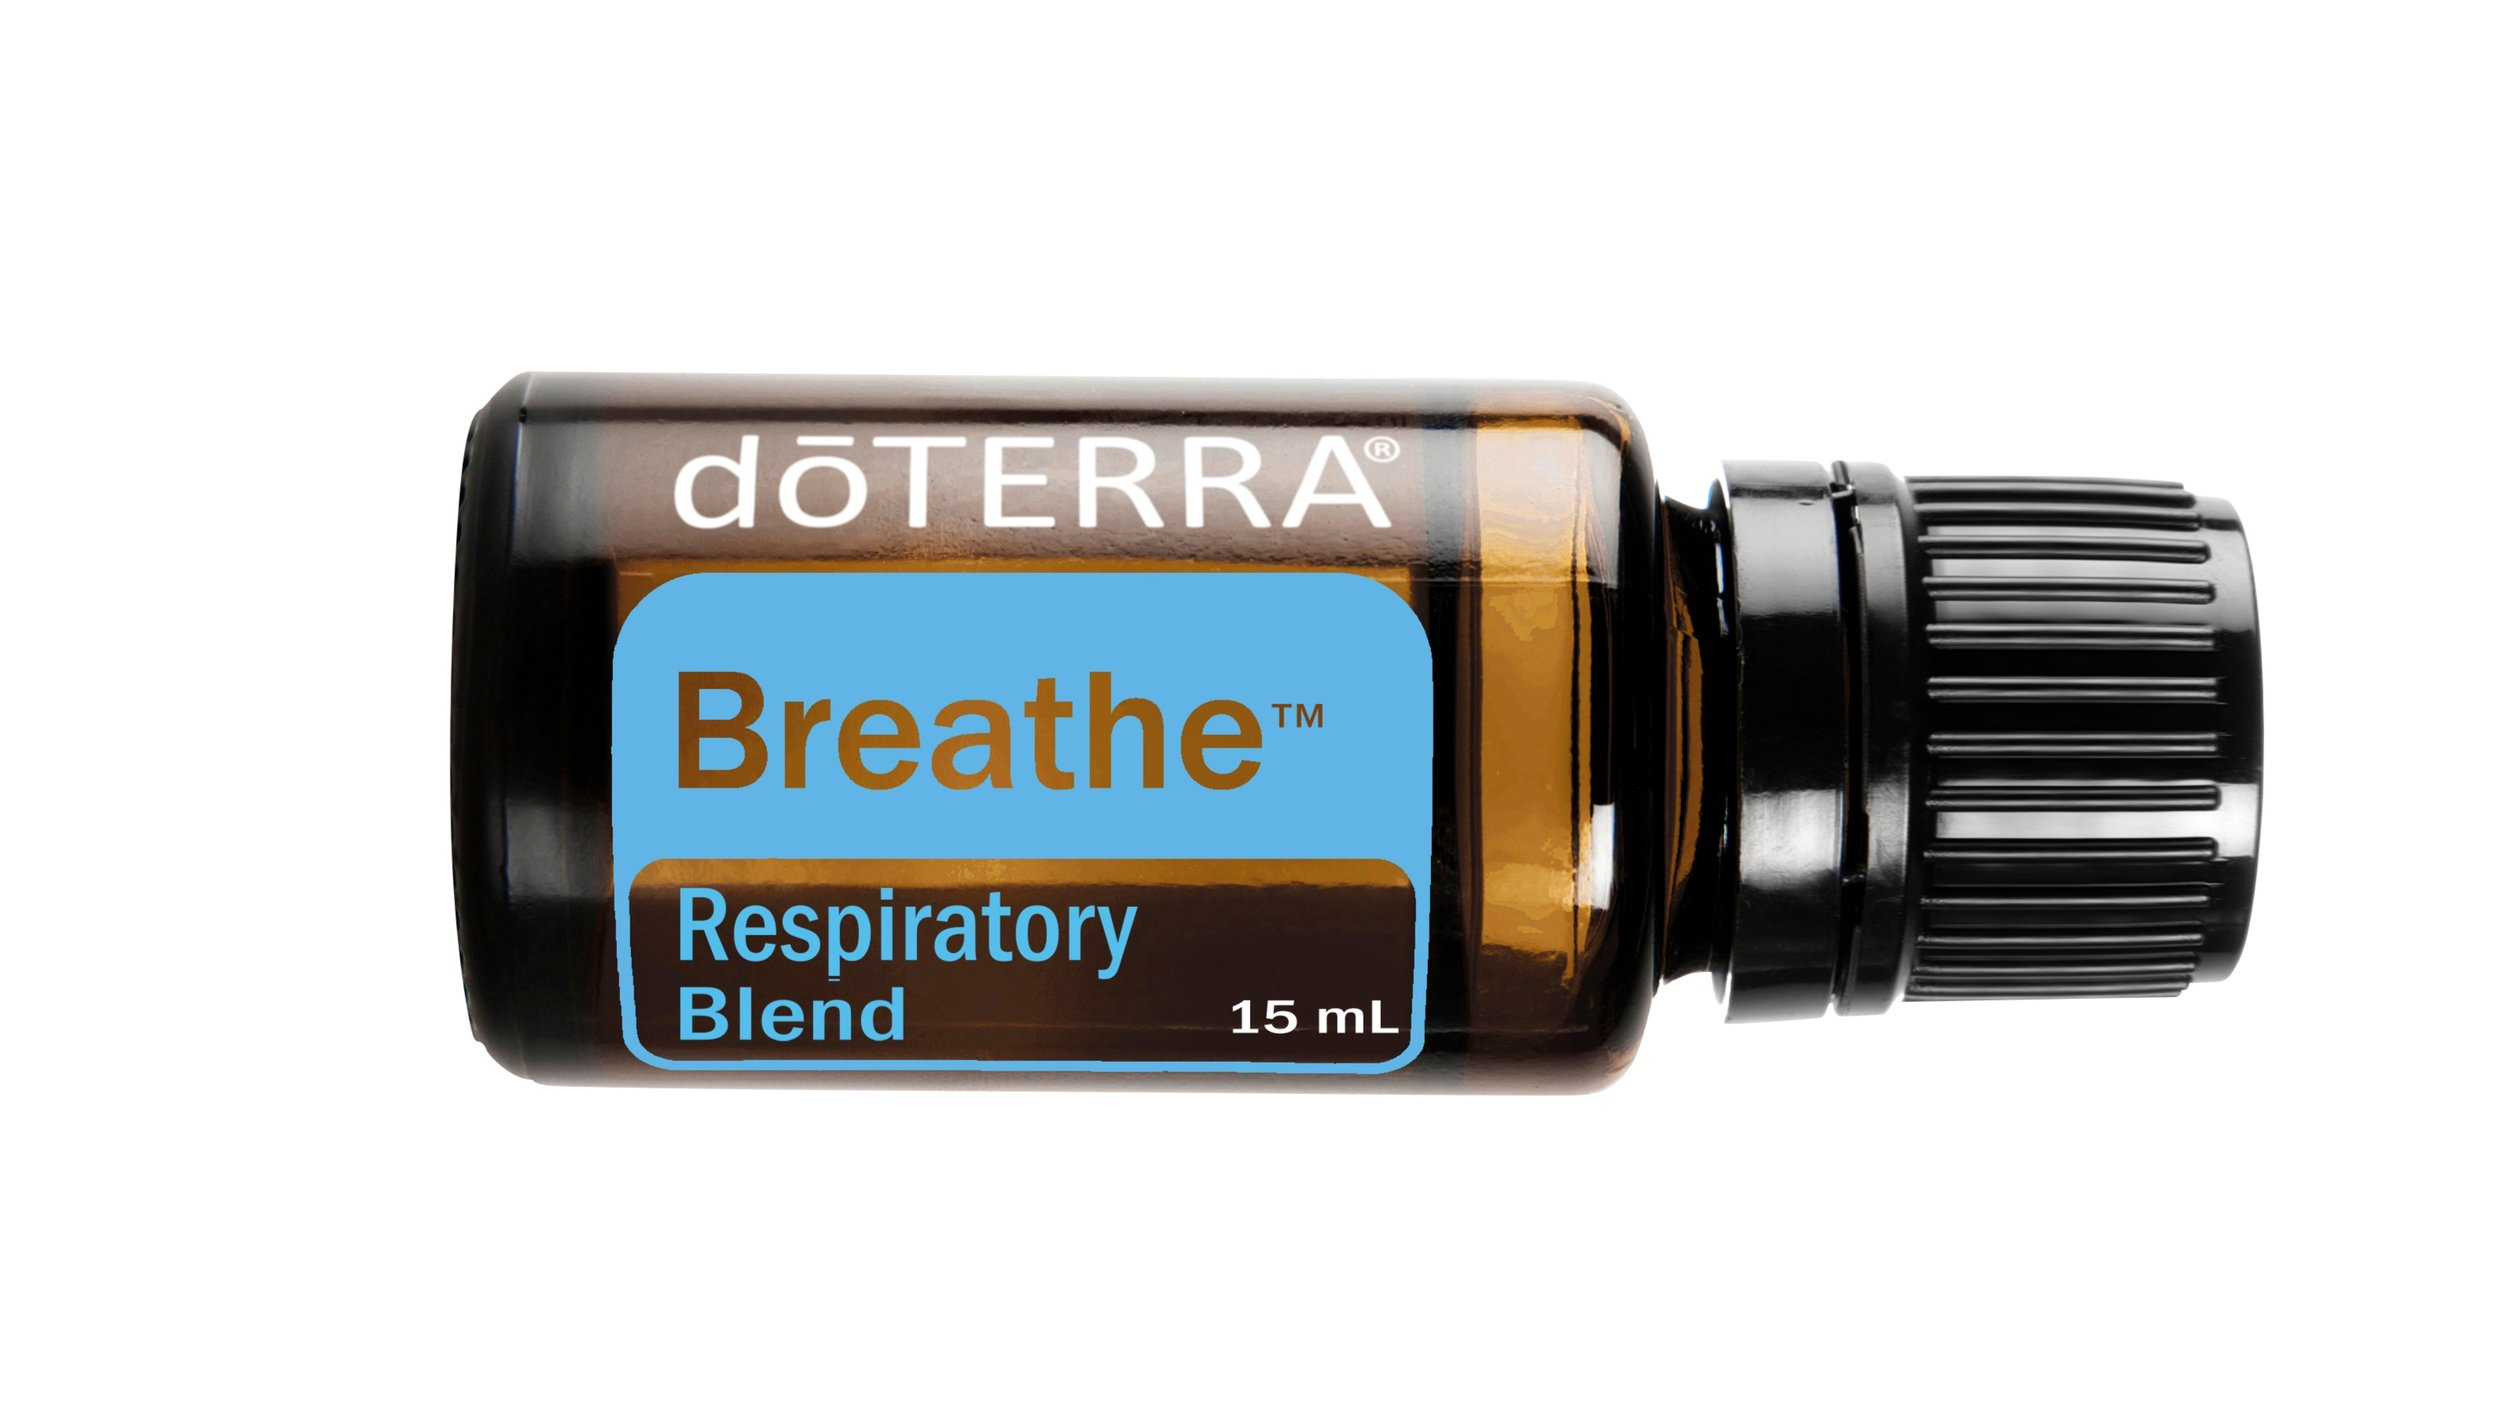 Respiratory Blend - Air or Breathe    The 'On Ramp' to Sleep.  For a more restful sleep during seasonal respiratory discomfort, diffuse Breathe at bedtime or keep in a roll-on bottle by the bedside, in the car or your purse. Roll it on the chest, bottom of feet or upper lip as needed!  Feel Clear and Free.  Put a drop of Breathe and a drop of Wintergreen essential oil in a sink of hot water. Then, place a damp towel over your head and inhale deeply. It's surprising how much this helps!  Working Out in a Building?  Forced heating and cooling, sweaty bodies, dust and your lungs…bad combo. Apply before exercising to invigorate and enhance breathing during your workout.  It's Like a Rain Maker.  Hiking in nature right after an air cleansing rain is an absolute dream. The next time you can't control the rain, try applying Breathe Respiratory Blend. It's the next best thing!  Leavin' on a Jet Plane, Bus or Train?  Confined spaces can sometimes have stagnant air, which can be claustrophobic. While in these spaces, free yourself mentally and emotionally by applying Breathe.  Stuck in a Desk, Small Office or Cube?  It's easy and convenient to just place a drop of Breathe in your palm, rub the palms together and take a deep breath from your cupped hands. Supporting healthy airways will improve your concentration. It may help everyone around you relax too!  A College Dorm Room Fix.  College dorm rooms aren't known for their vast size or light airy appeal. When you combine a 'first-time on their own' roommate with unknown cooking preferences, sweaty workout clothes, or interesting hygiene habits, Breathe is the great equaliser and your best friend.  It's a Zoo in Here!  Staying at someone else's home, with someone else's pets (with their aroma, dander or musty smell) doesn't need to be a problem. Try rubbing Breathe on your chest and under your nose before entering a pet filled house. Great for musty campers vans as well.  Boost Brain Power.  Breathe Respiratory Blend contains 